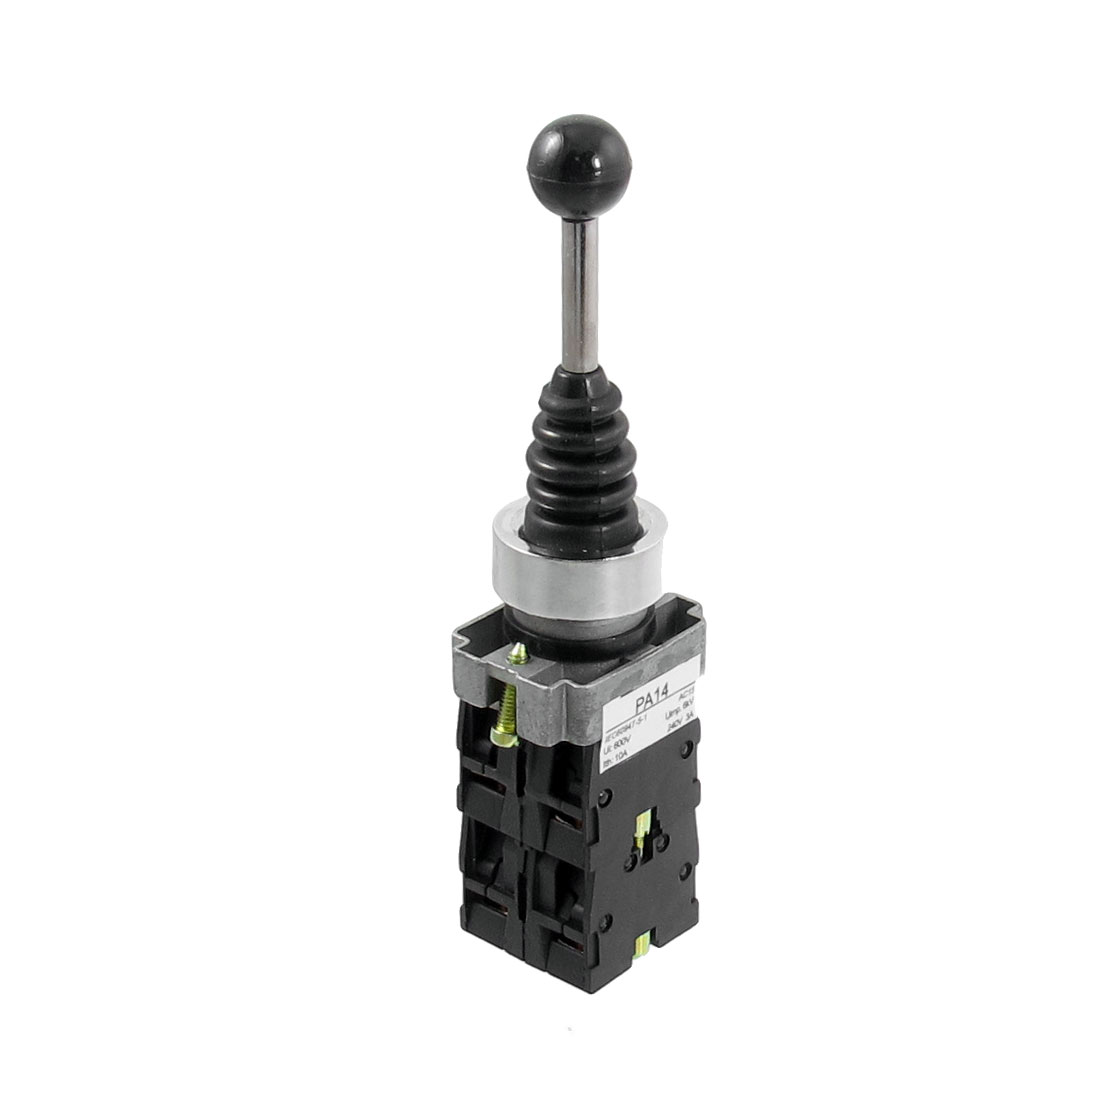 SPST 4 N.O. NO 4 Position Self-locking Type Monolever Joystick Switch